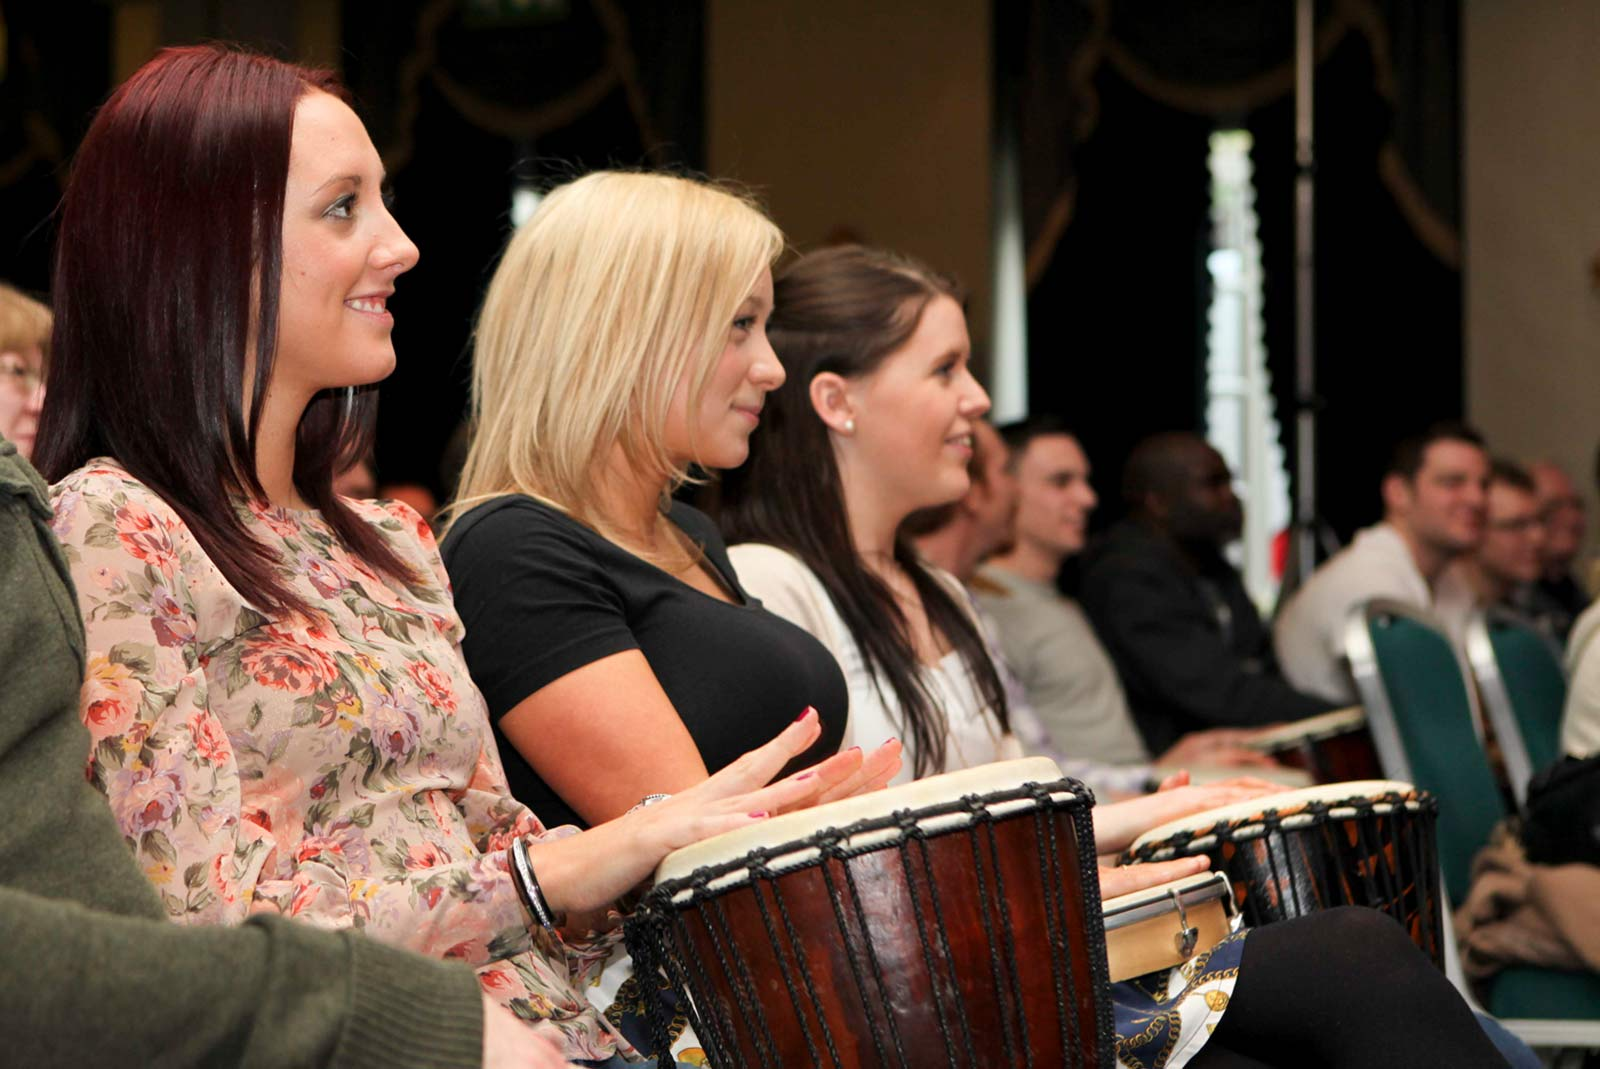 Drumming events